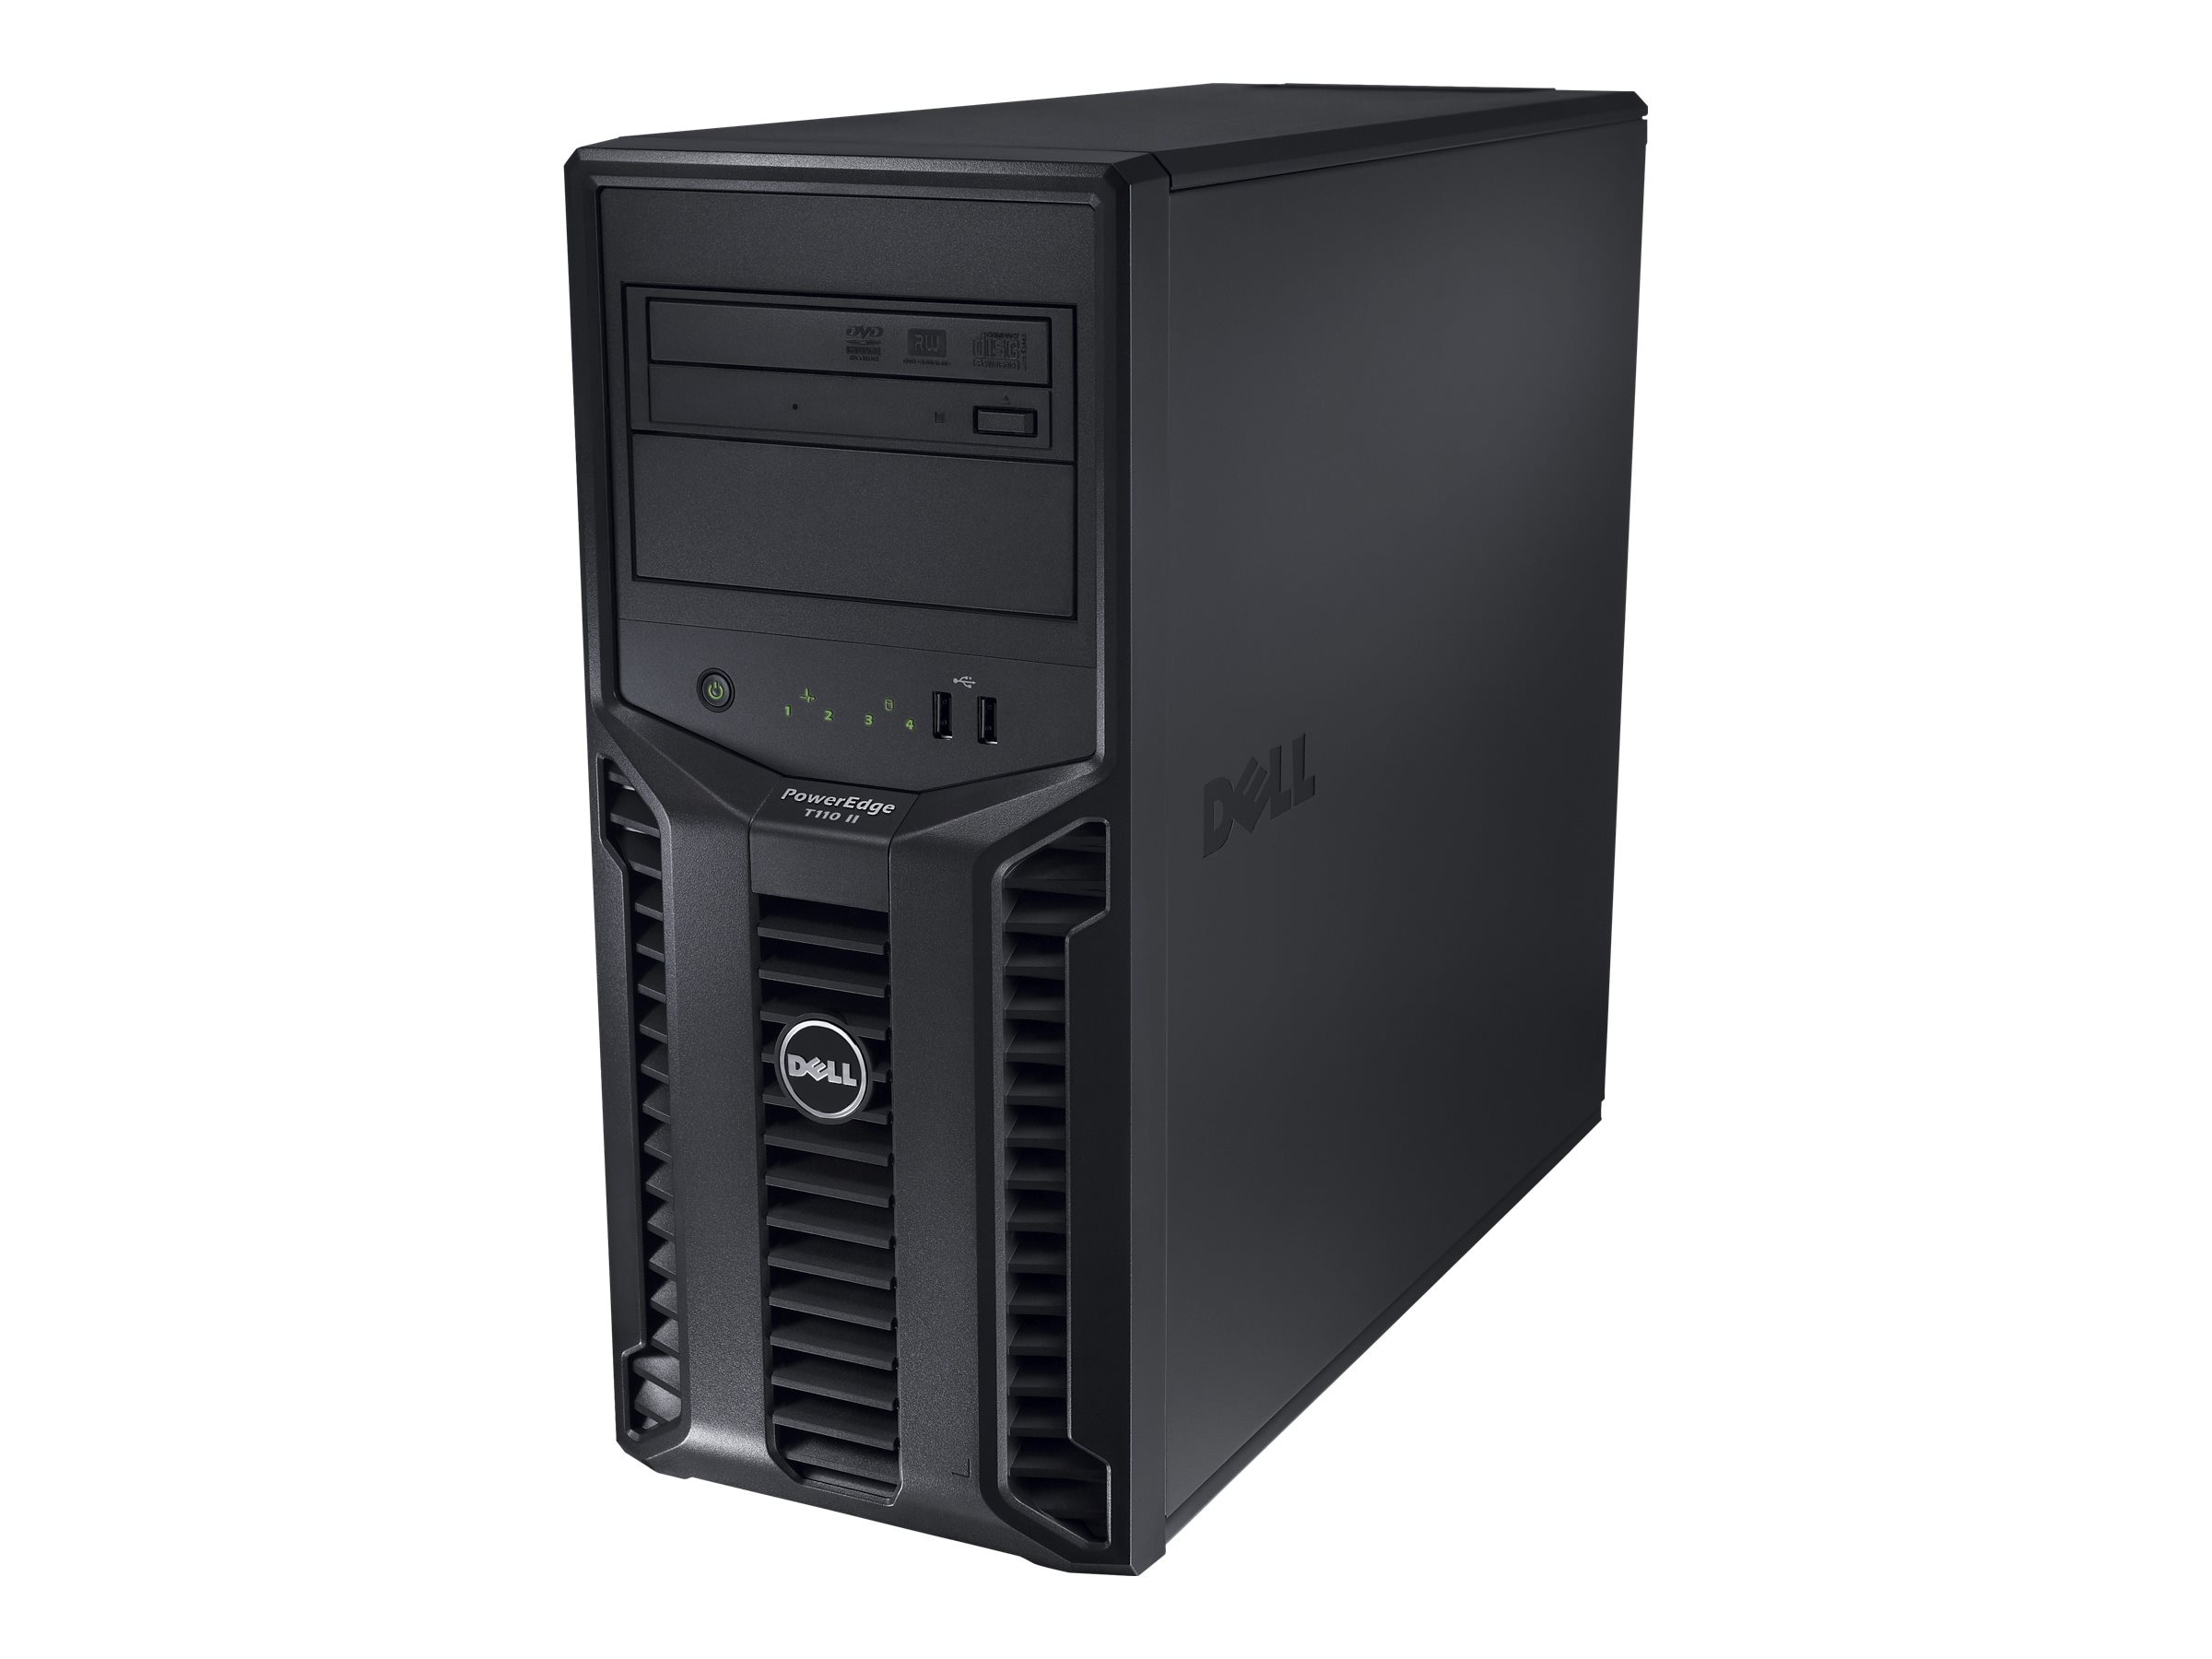 Dell PowerEdge T110 II Intel 3.3GHz Xeon, 462-6041, 17733673, Servers